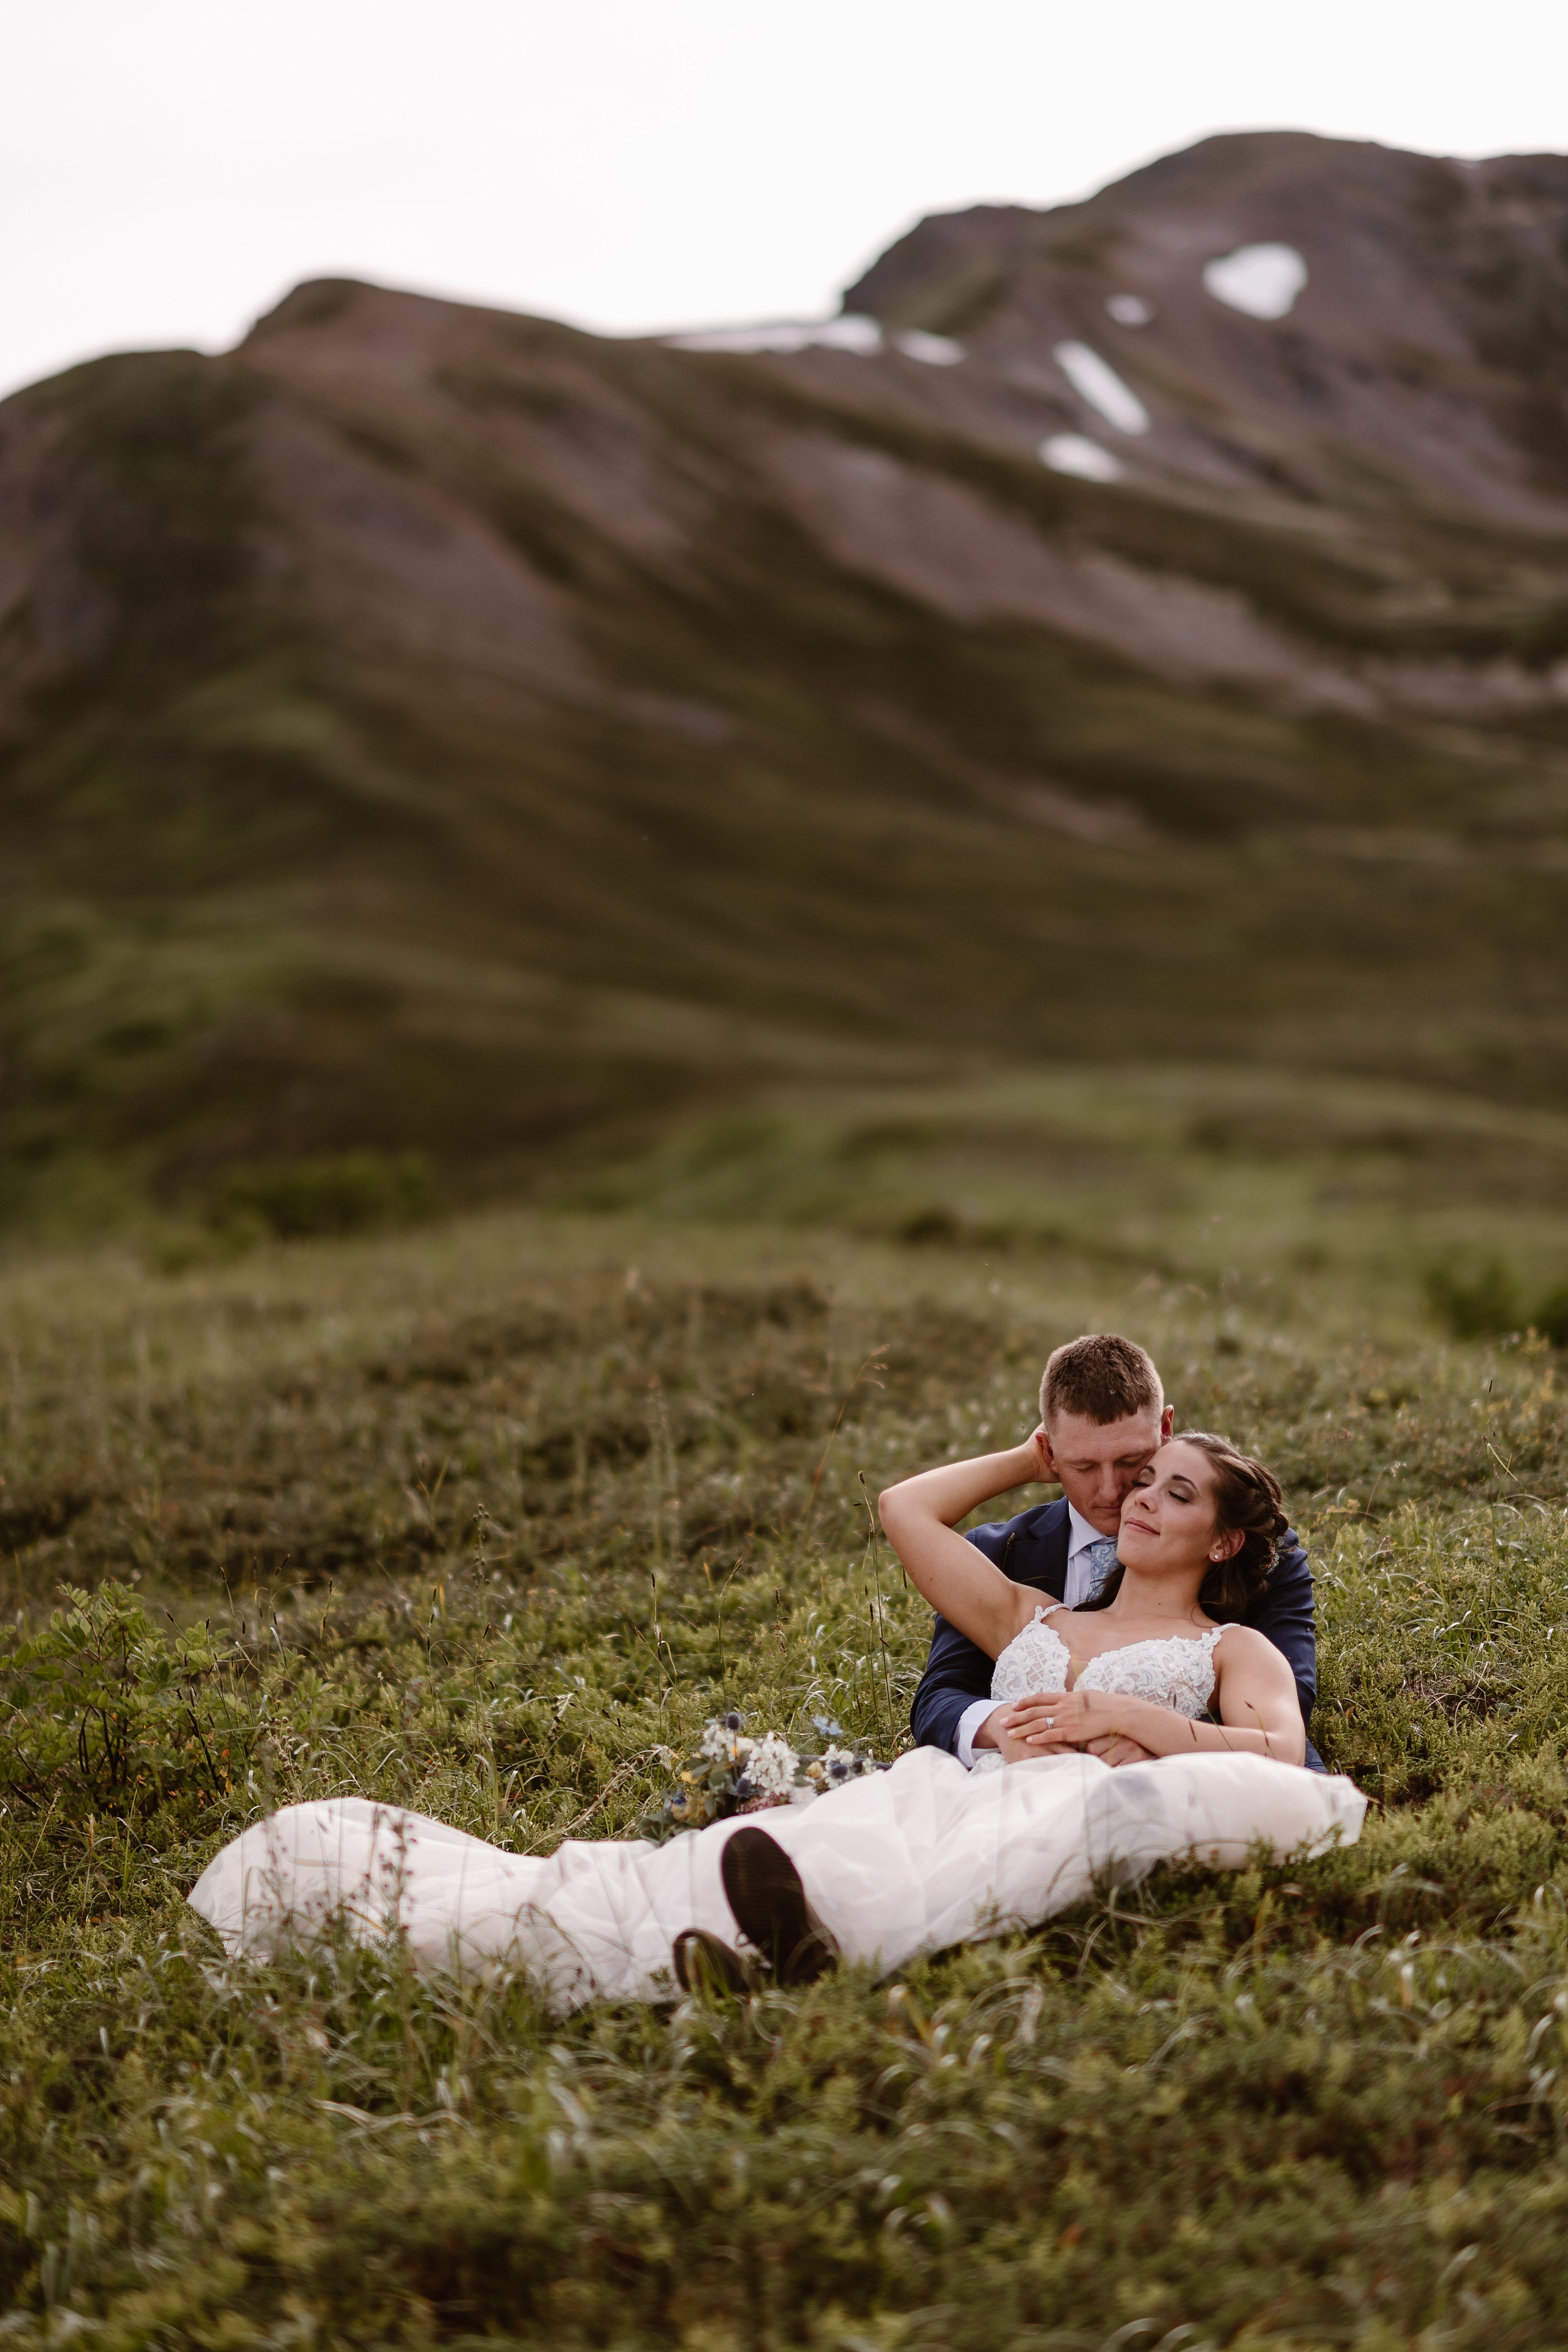 The bride and groom lay in the grass on the green, lush mountain side in Alaska. Jordyn reclines back into Connor's arms, gently reaching back to touch his head. Snowy mountain tops peek out at the top of this elopement photo captured by Alaska wedding photographers Adventure Instead.